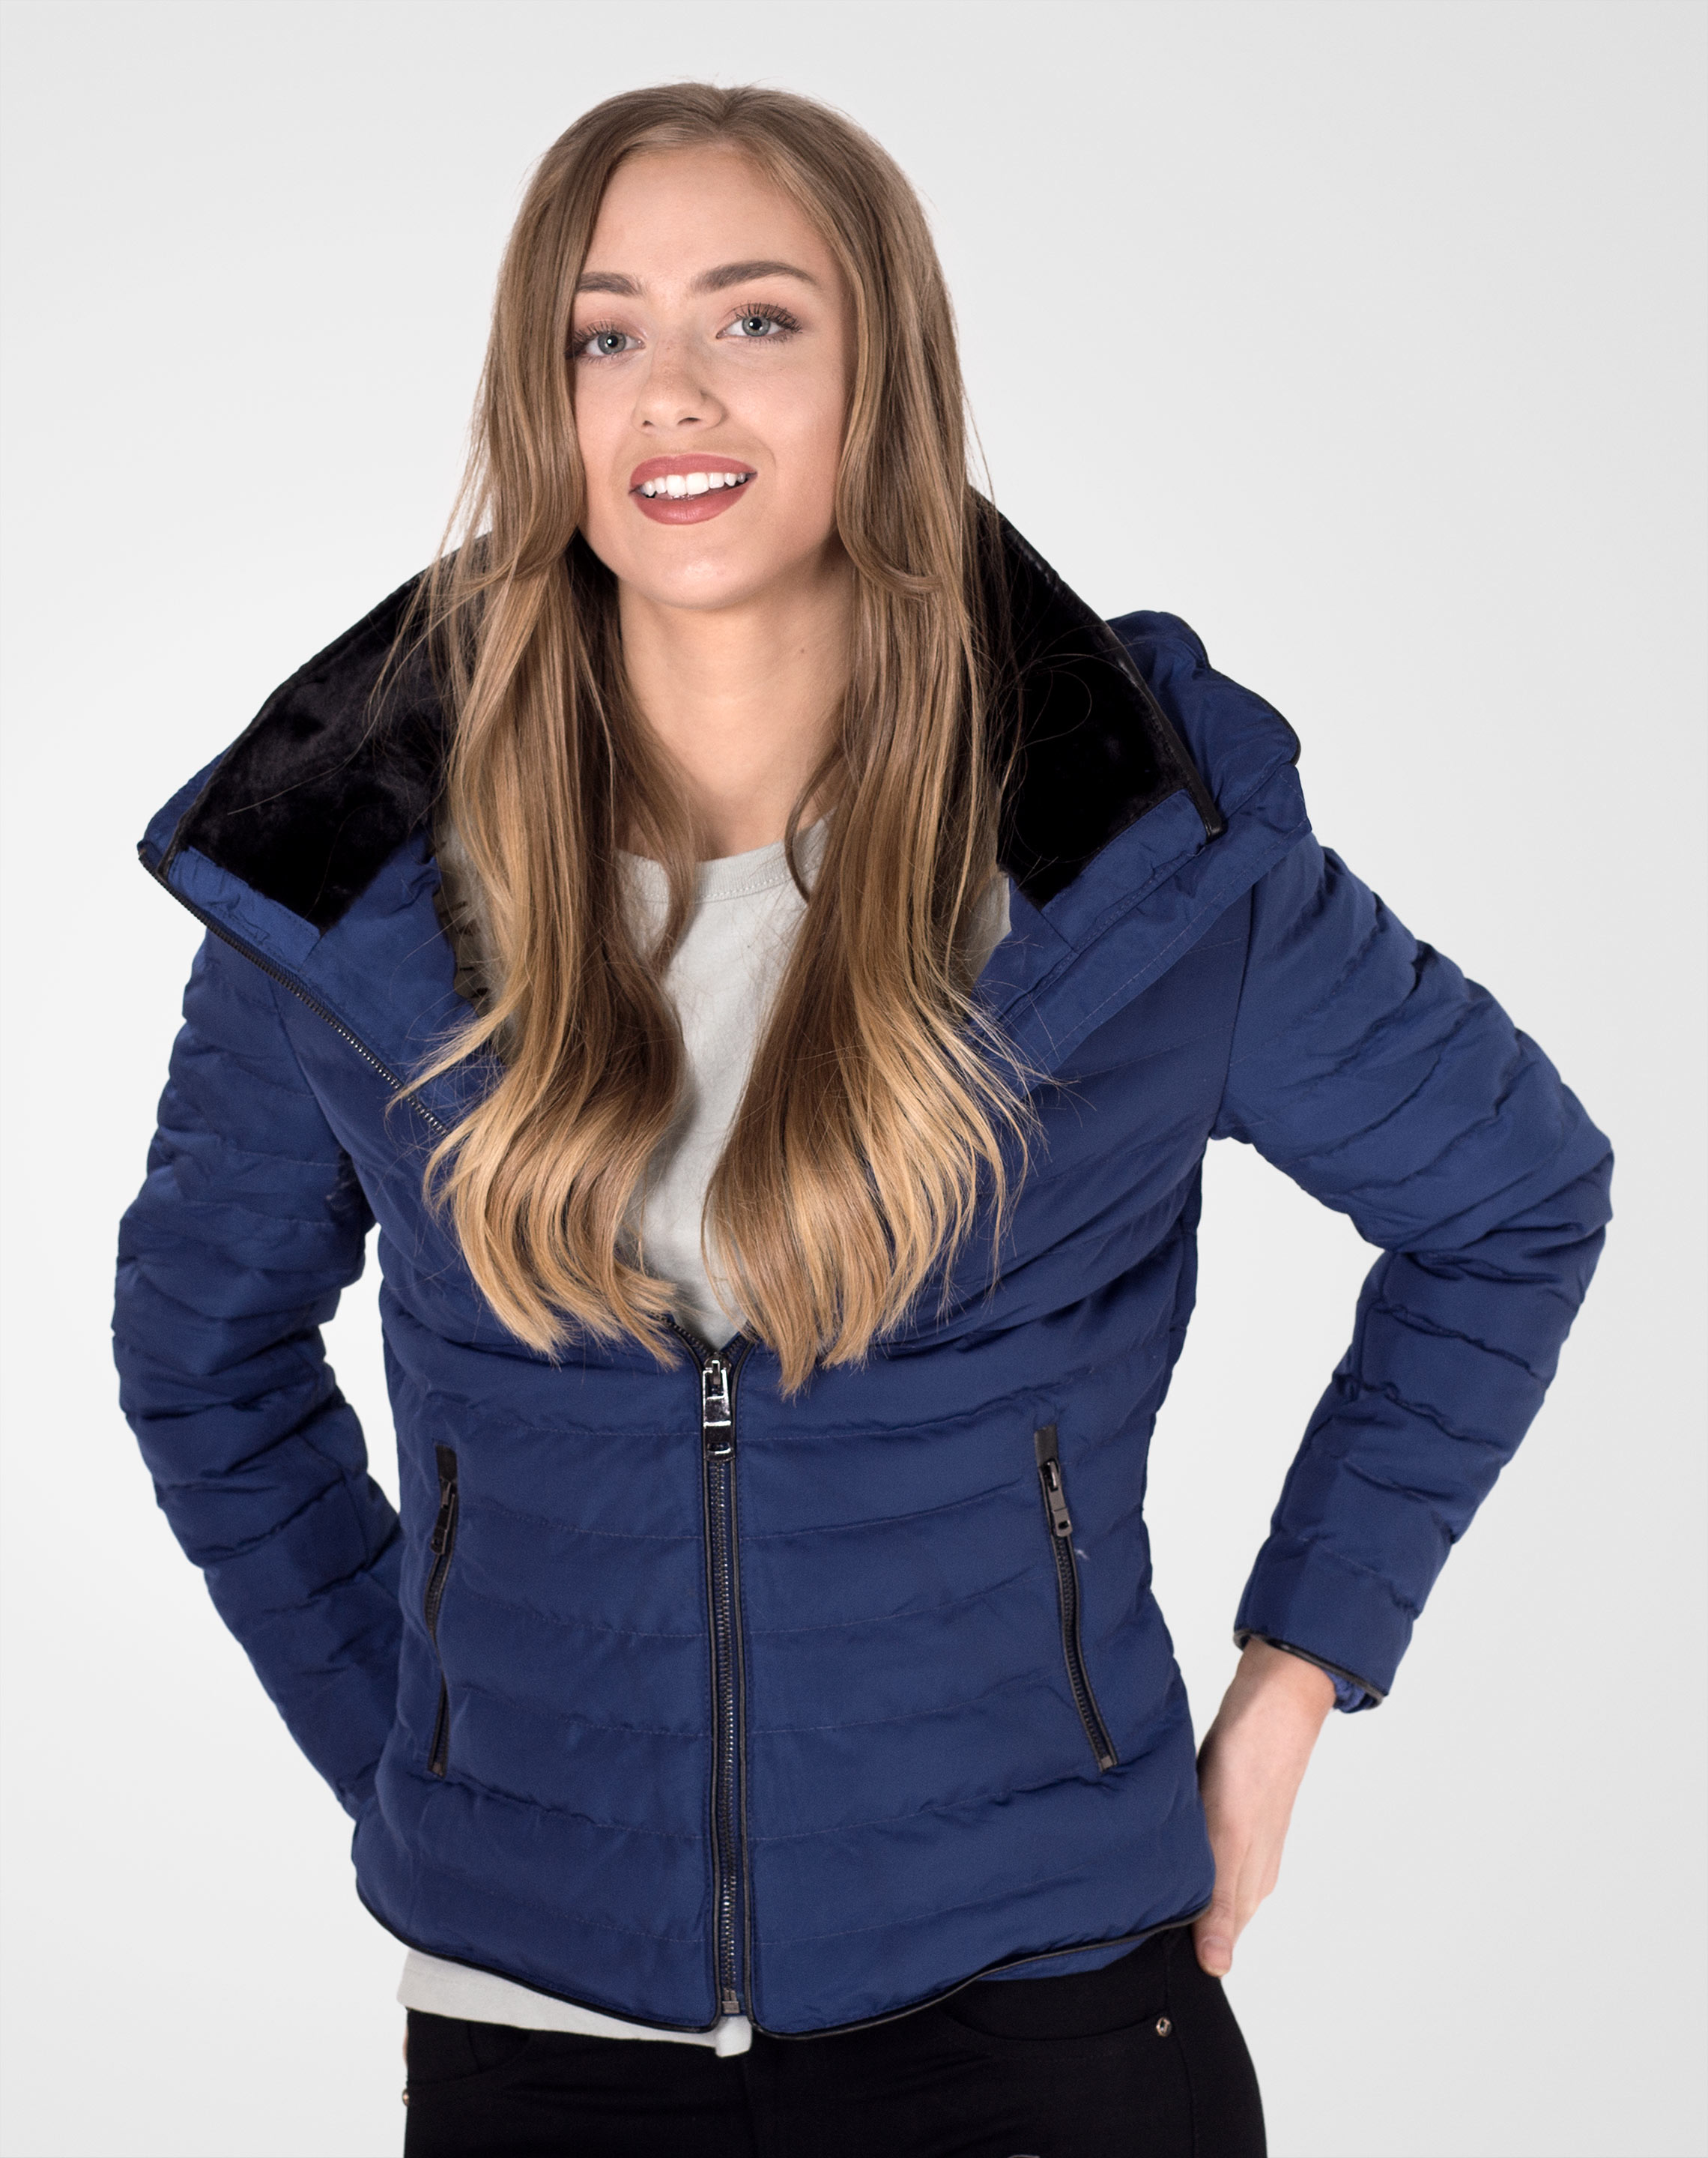 Image 1 of Womens Quilted Fur Jacket color Blue and sizes 8, 10, 12, 14, 16 from Noroze